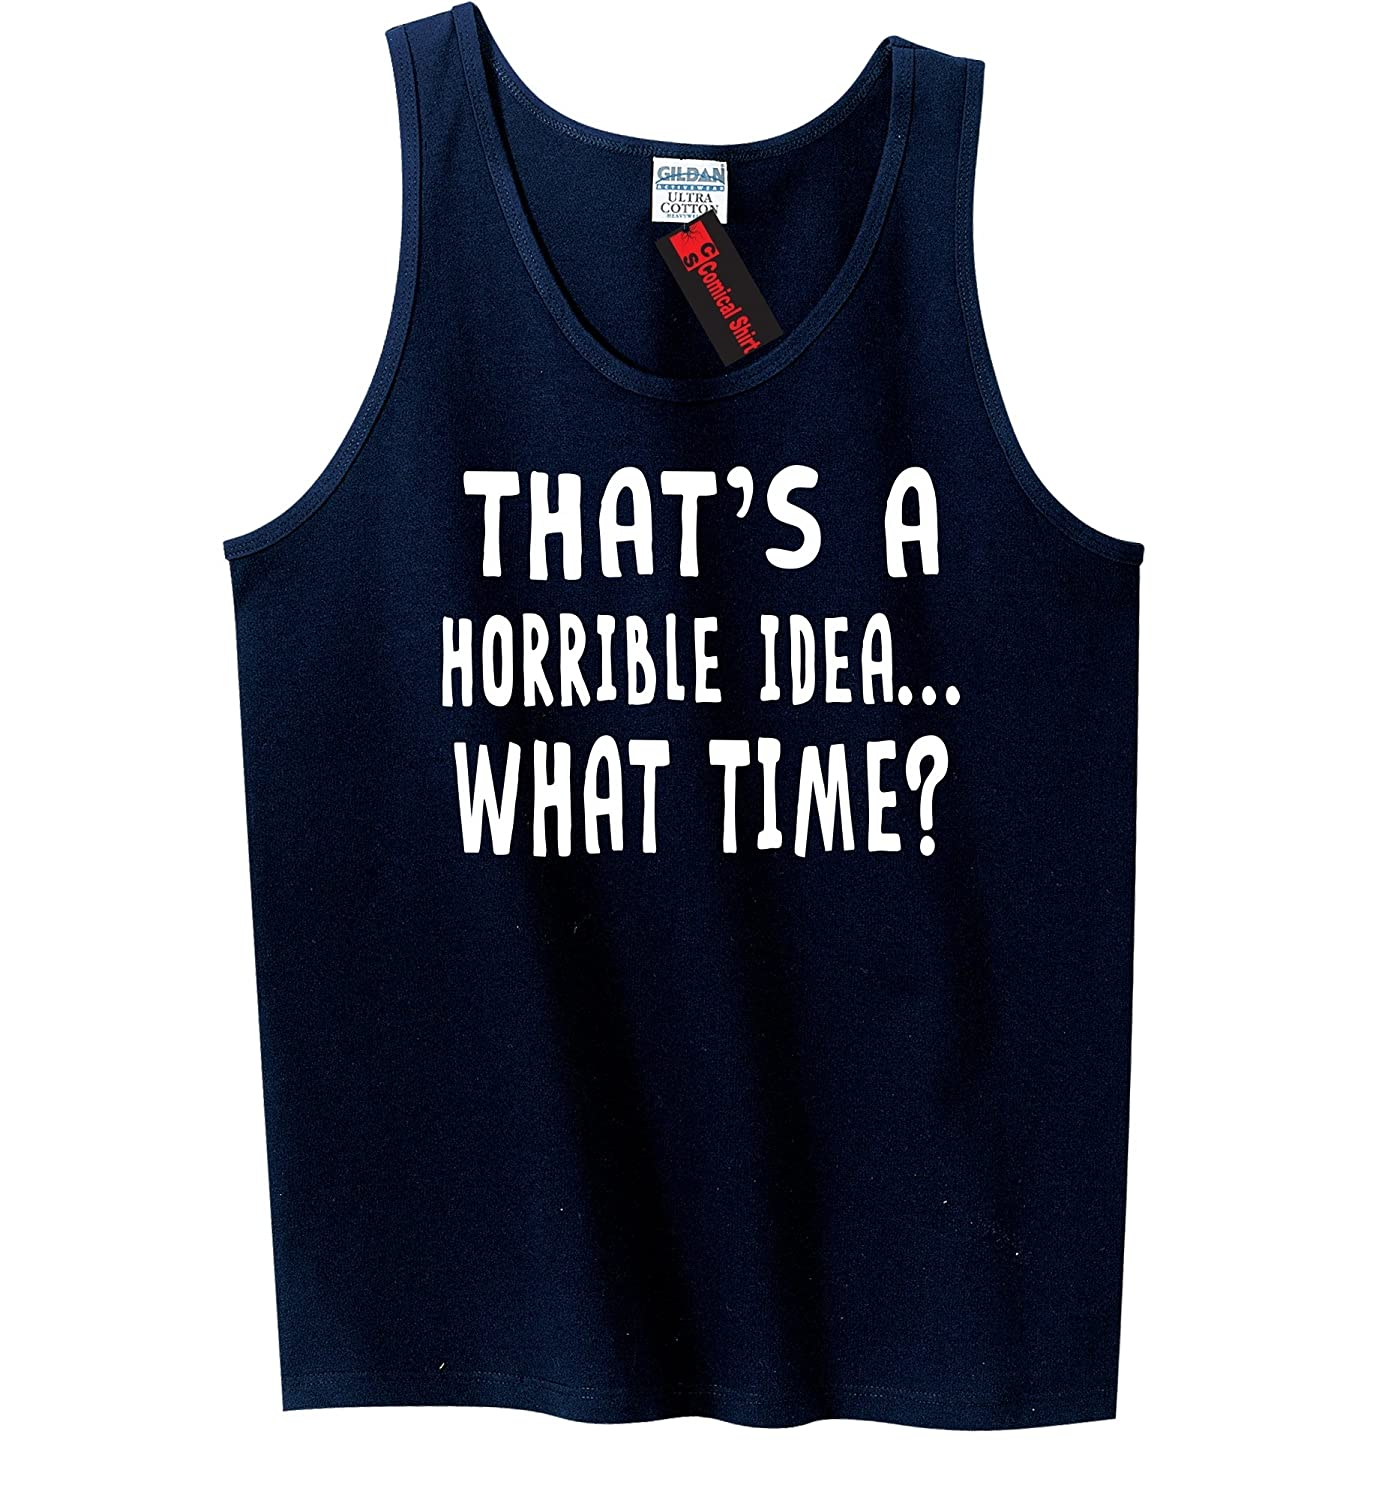 ComicalシャツMen 's that 's A Horrible Idea What Timeタンクトップ